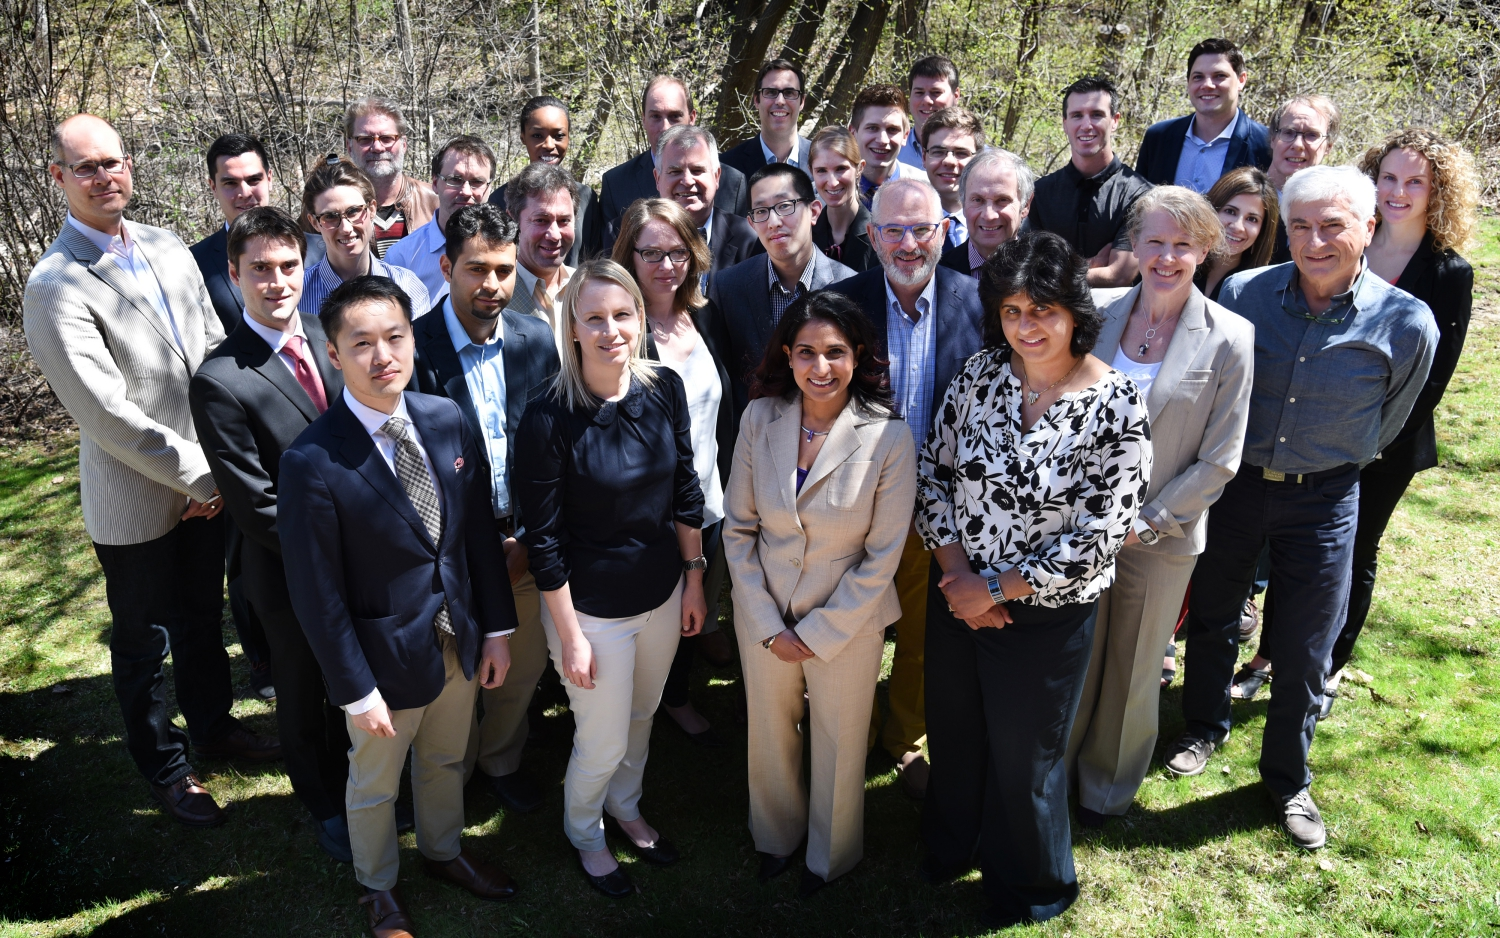 Group photo at the 2016 resident research day.